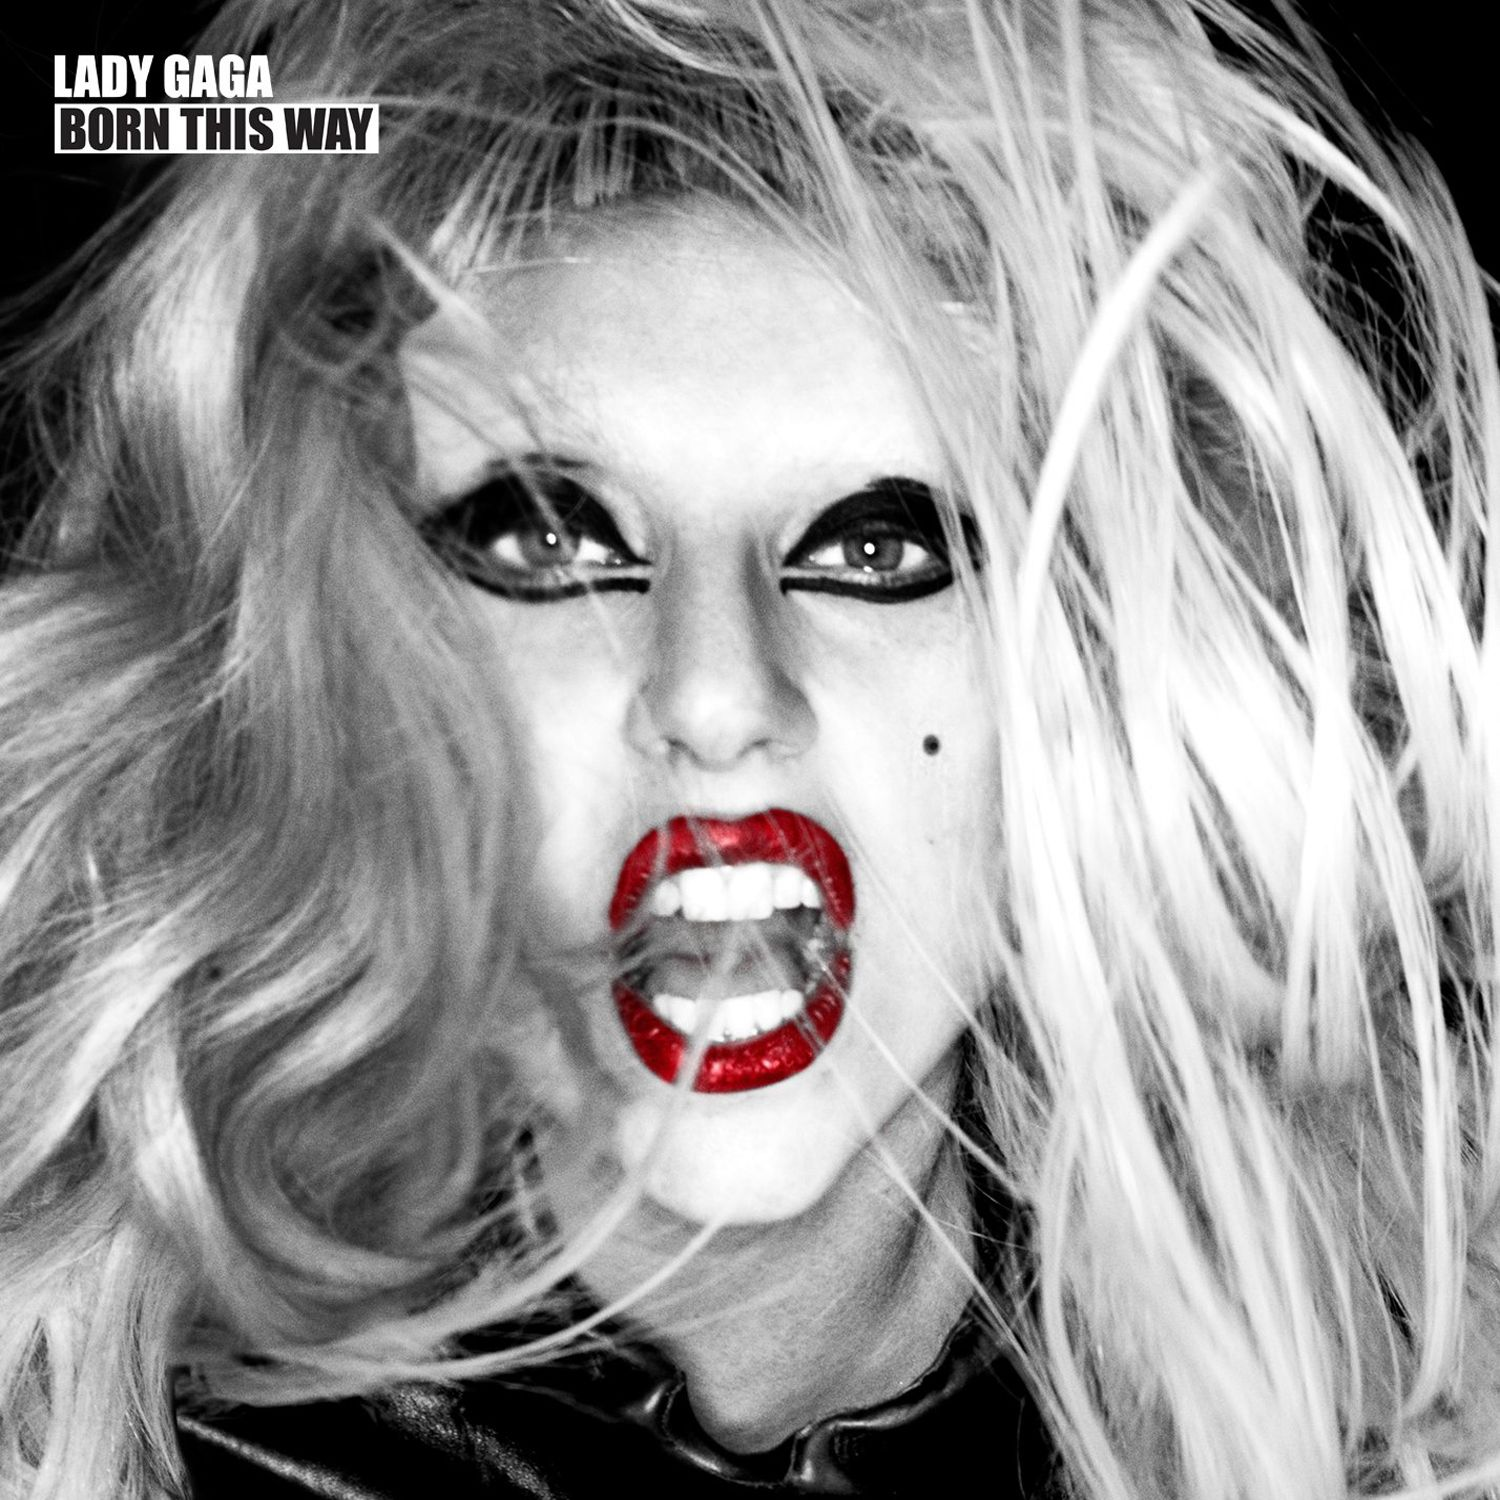 http://2.bp.blogspot.com/-eSHPElbAXKE/Tdsv6mR_uPI/AAAAAAAAAUg/gXKzYrf4uQQ/s1600/lady-gaga-born-this-way-deluxe-edition-album-cover.jpg